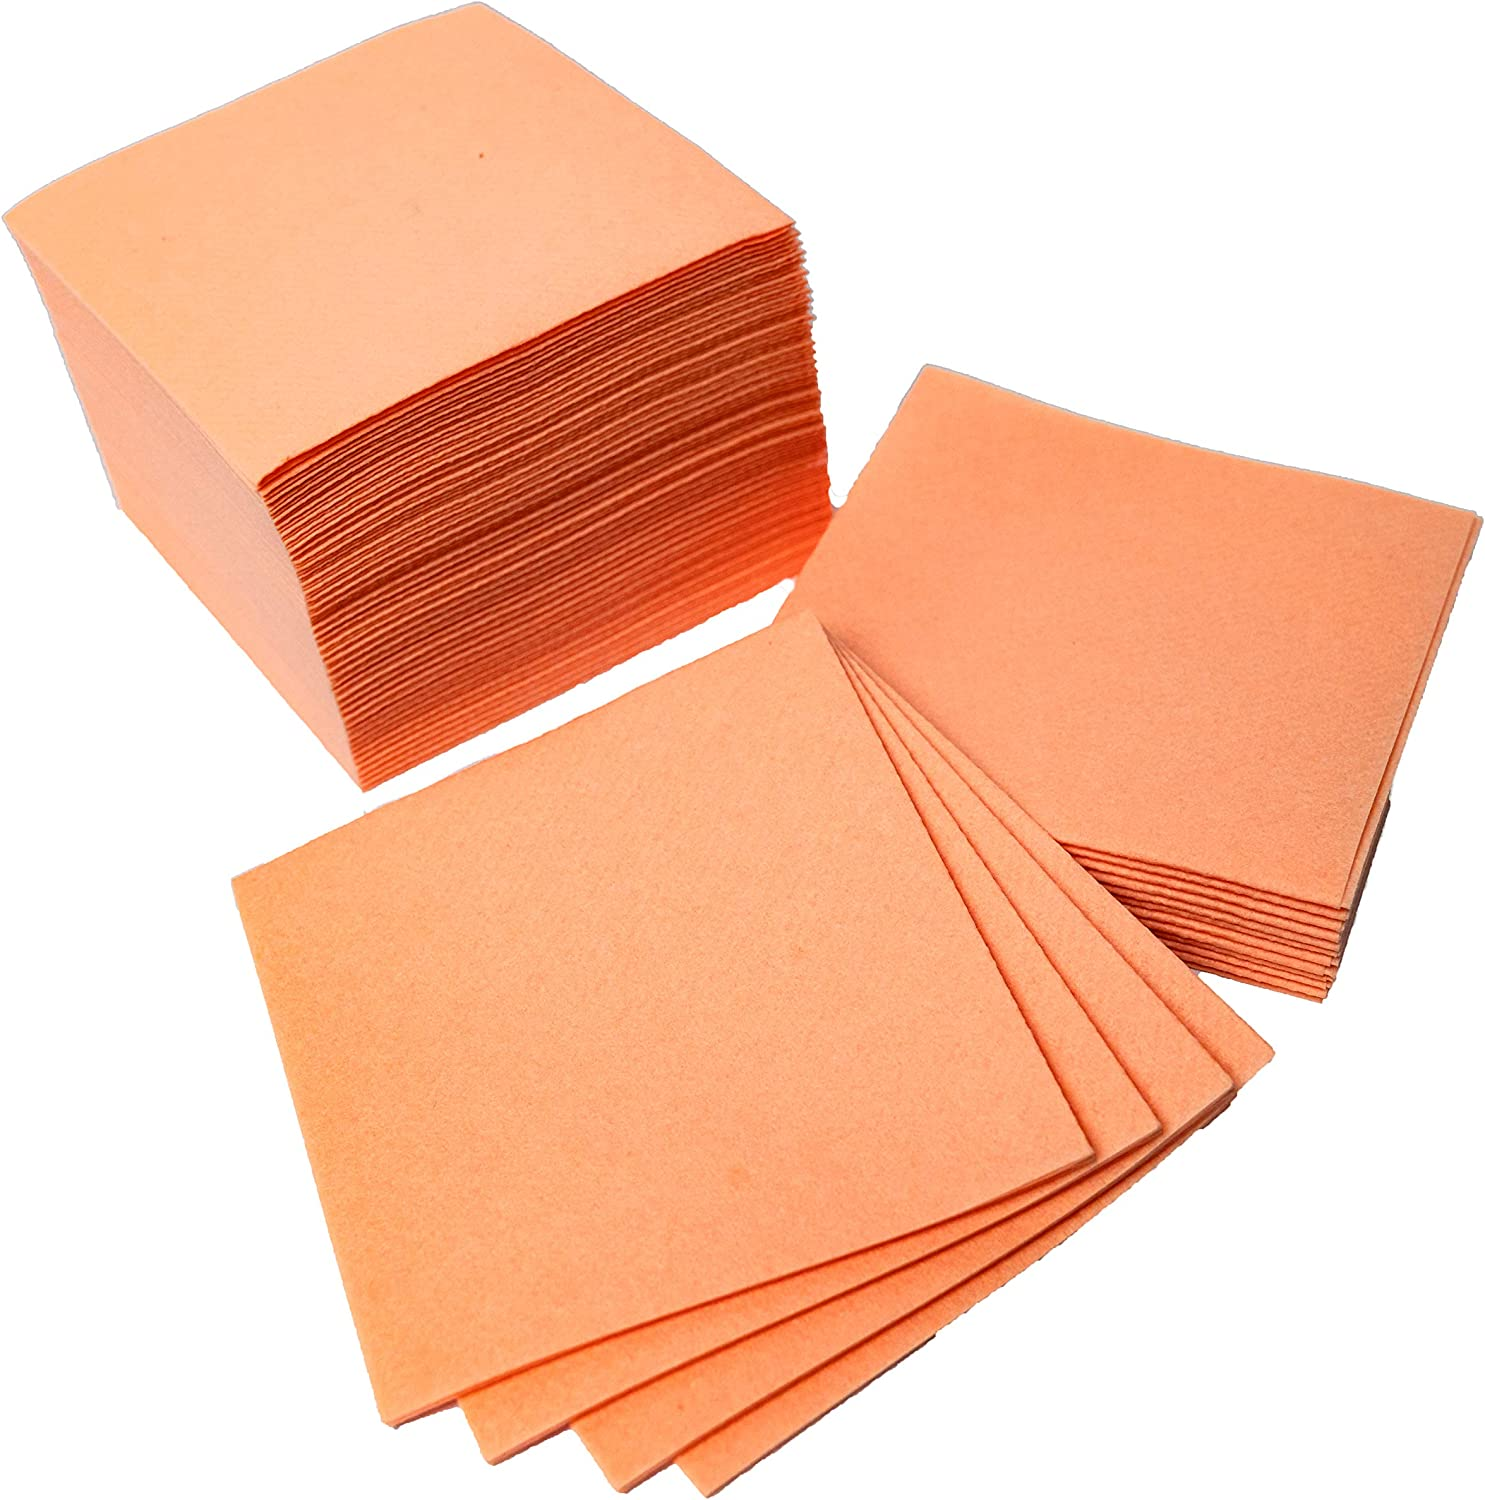 """American Homestead Cocktail Napkins - Small 4"""" x 4"""" Linen-Like Disposable Beverage/Bar Napkins - Bulk Square Napkins Eco-Friendly & Compostable - Everyday Use, Party or Wedding (100 Count, Peach)"""